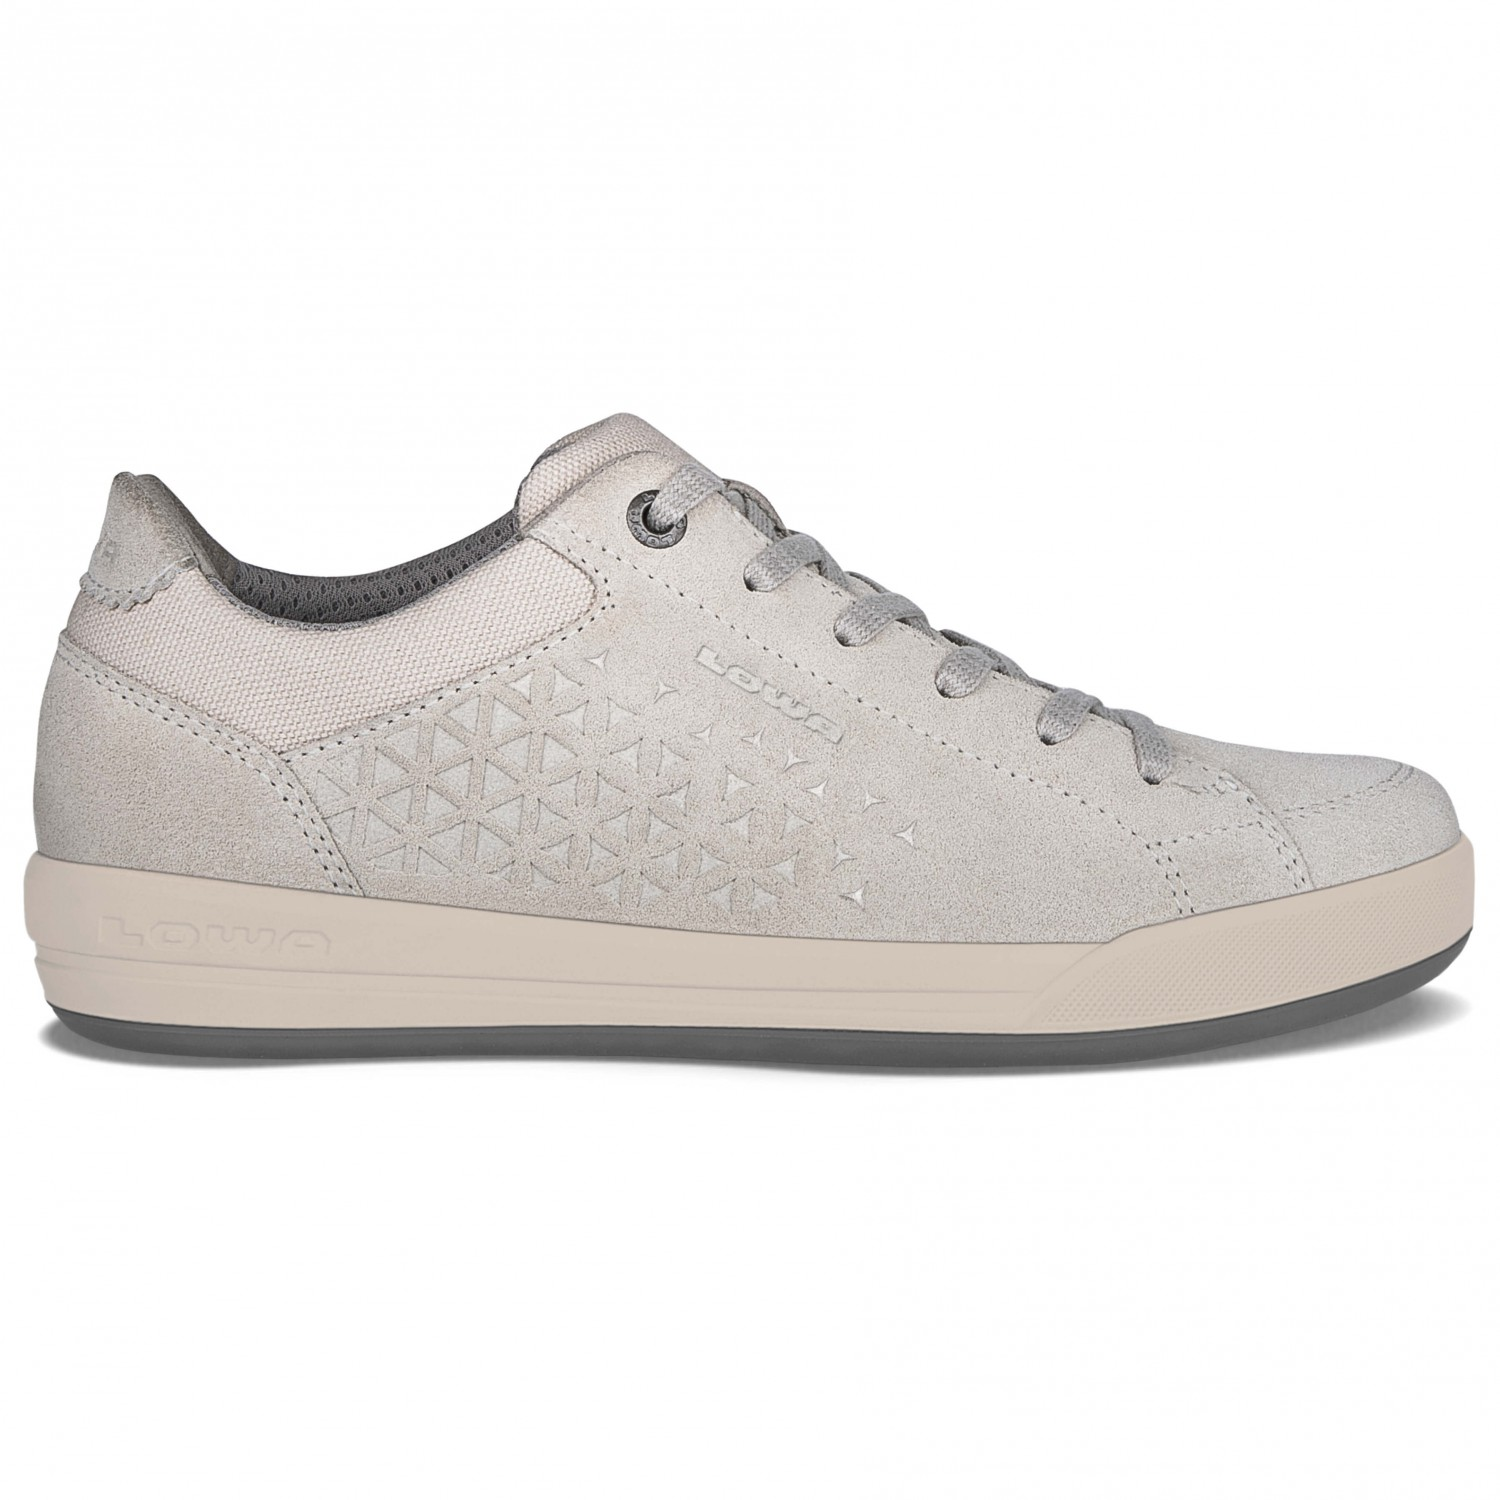 Alpinetrek co Lo Online Lowa Women'sBuy uk Sneakers Lisboa thdrsQ